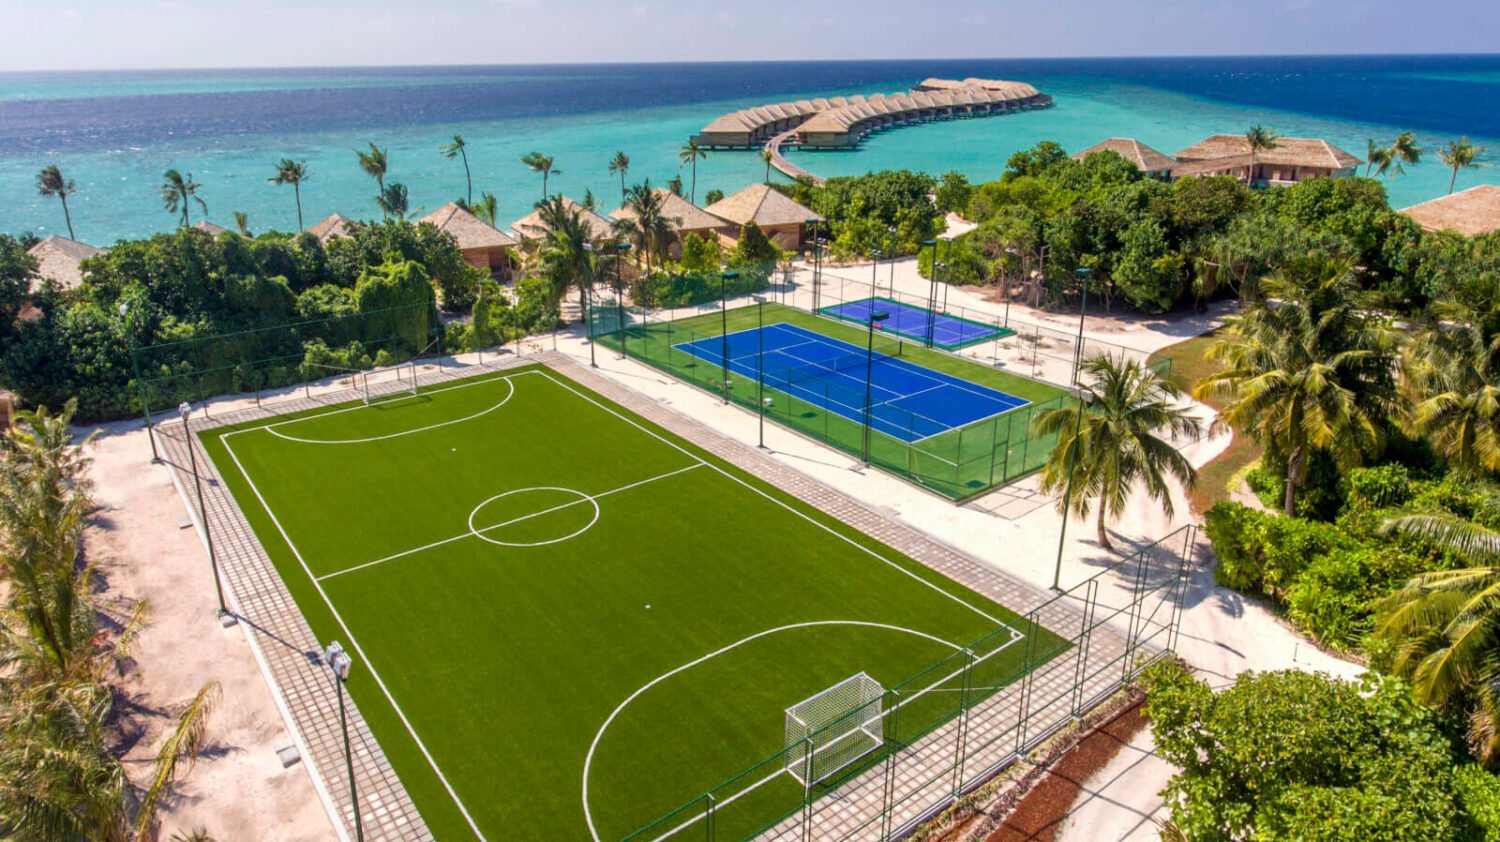 football maldives-hurawalhi island resort maldives